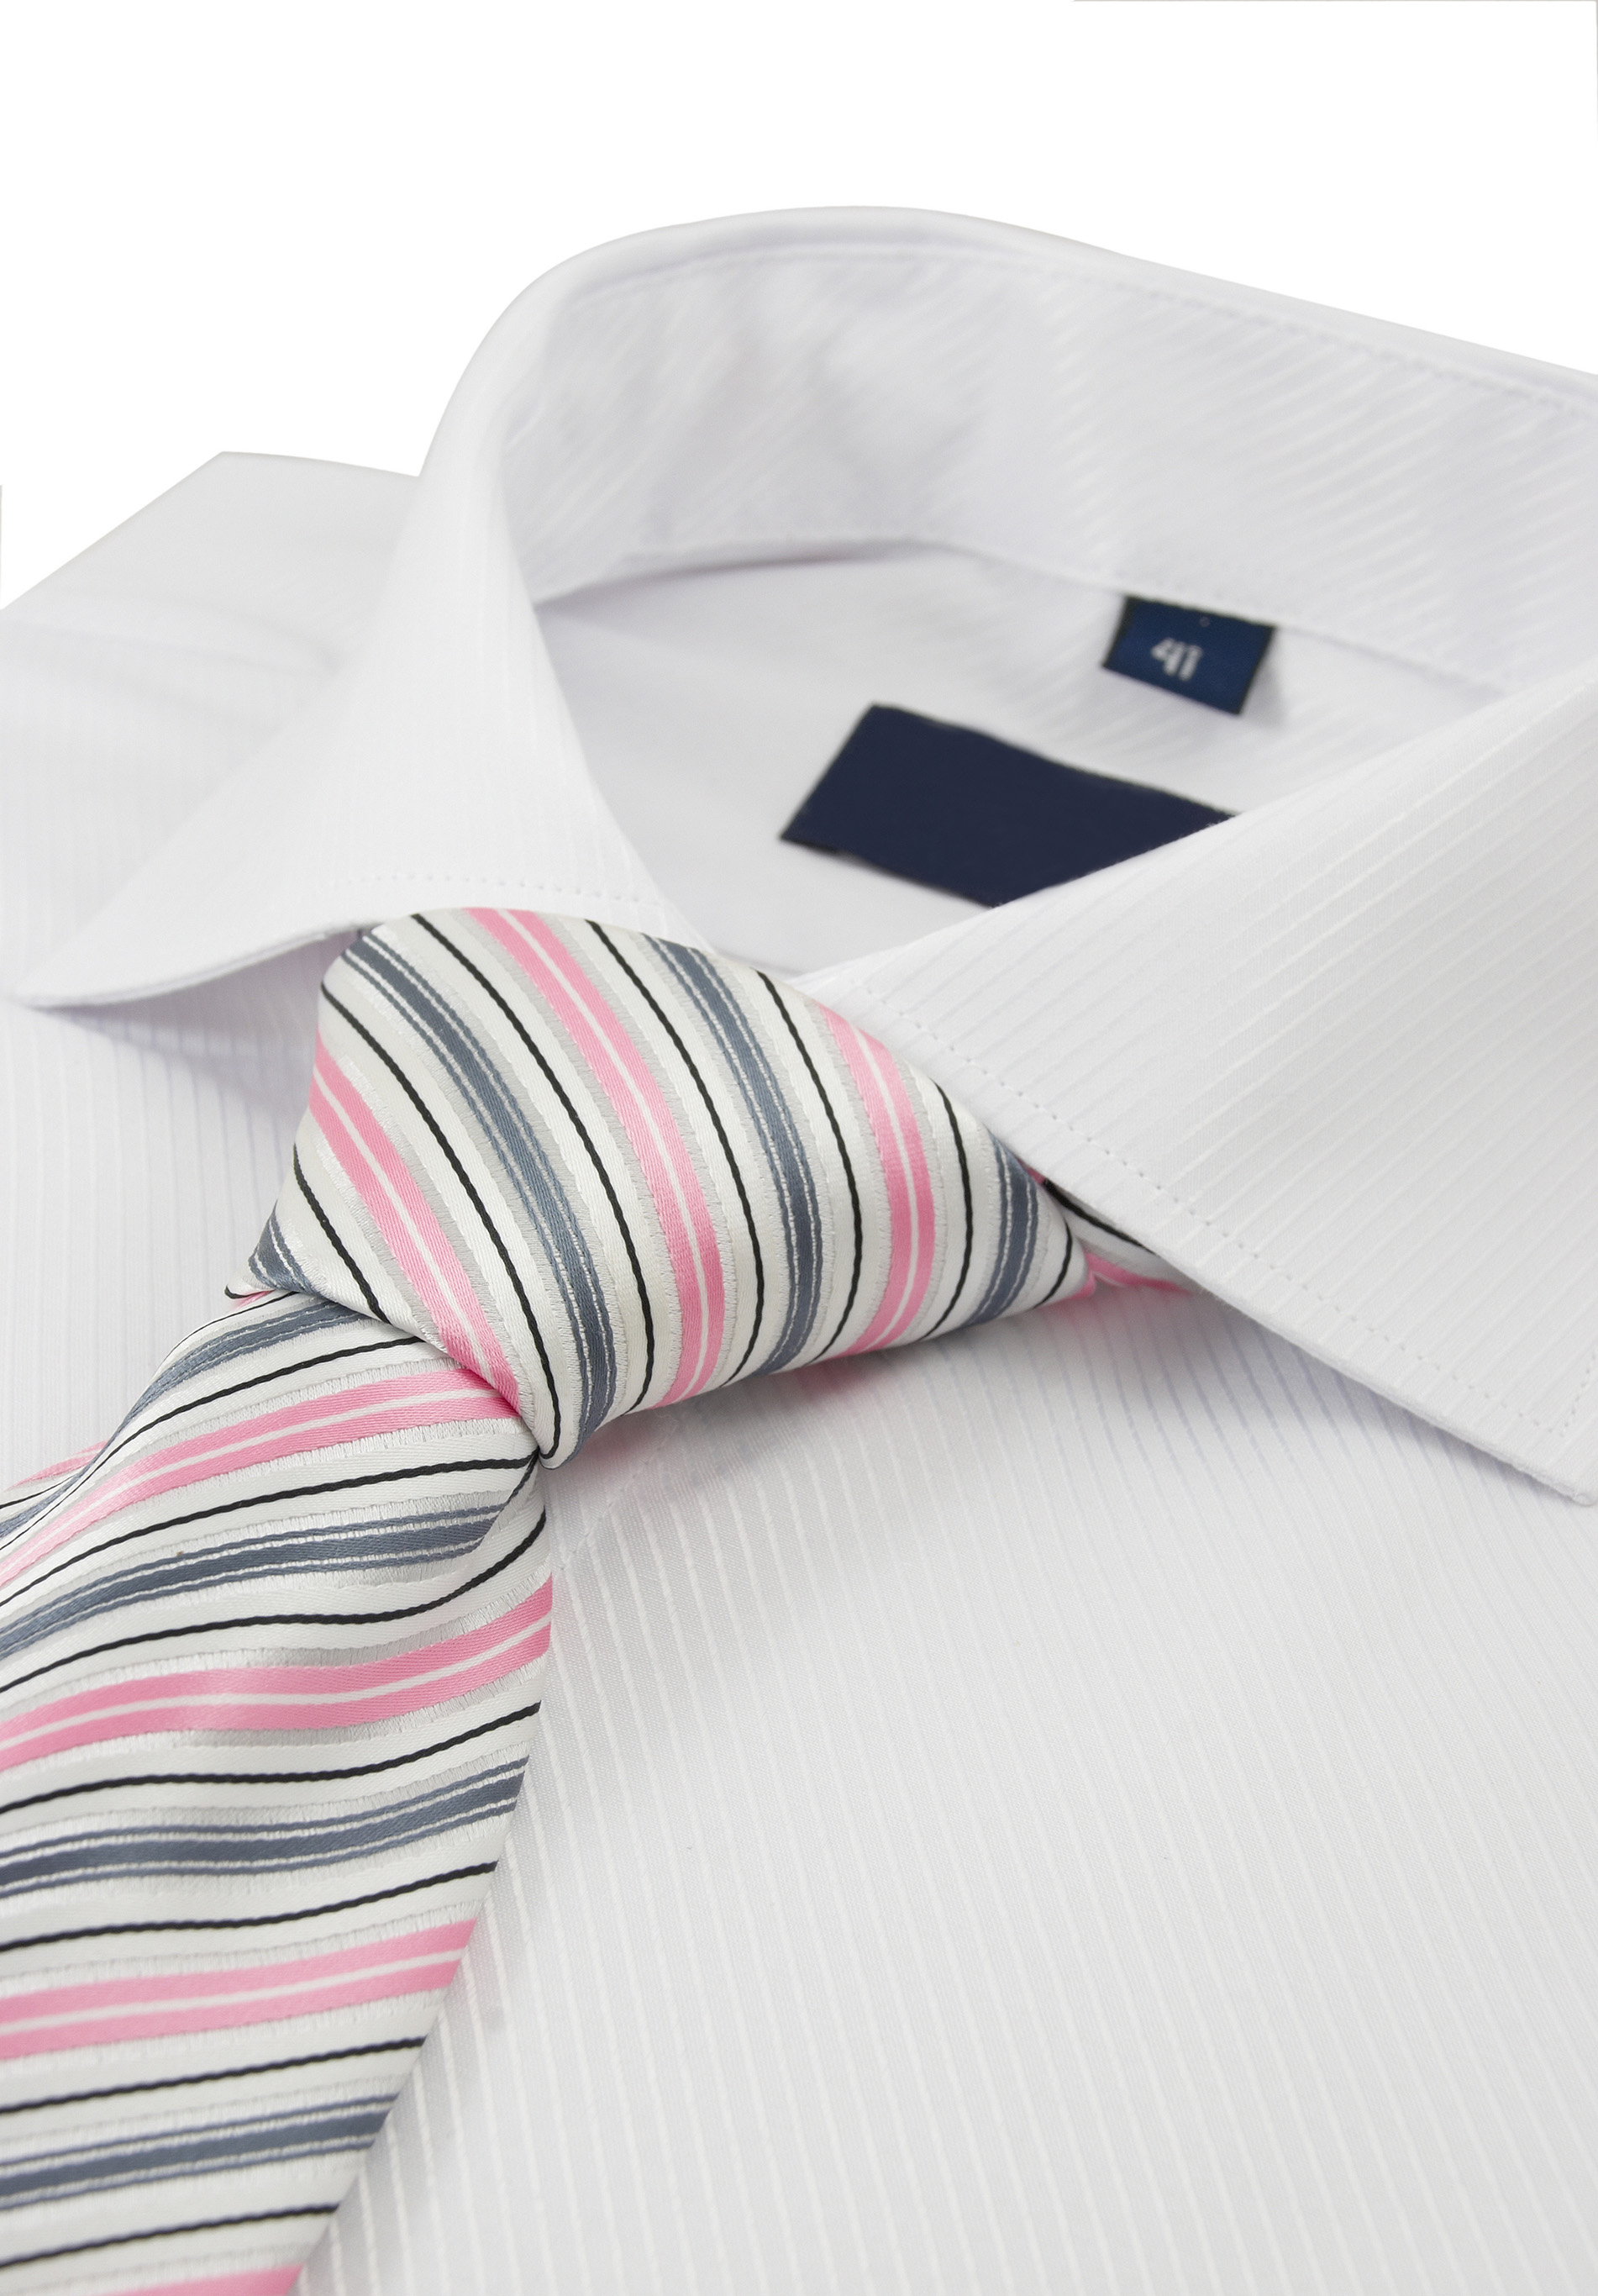 Personalized Executive Shirt Cleaning Fashion Cleaners